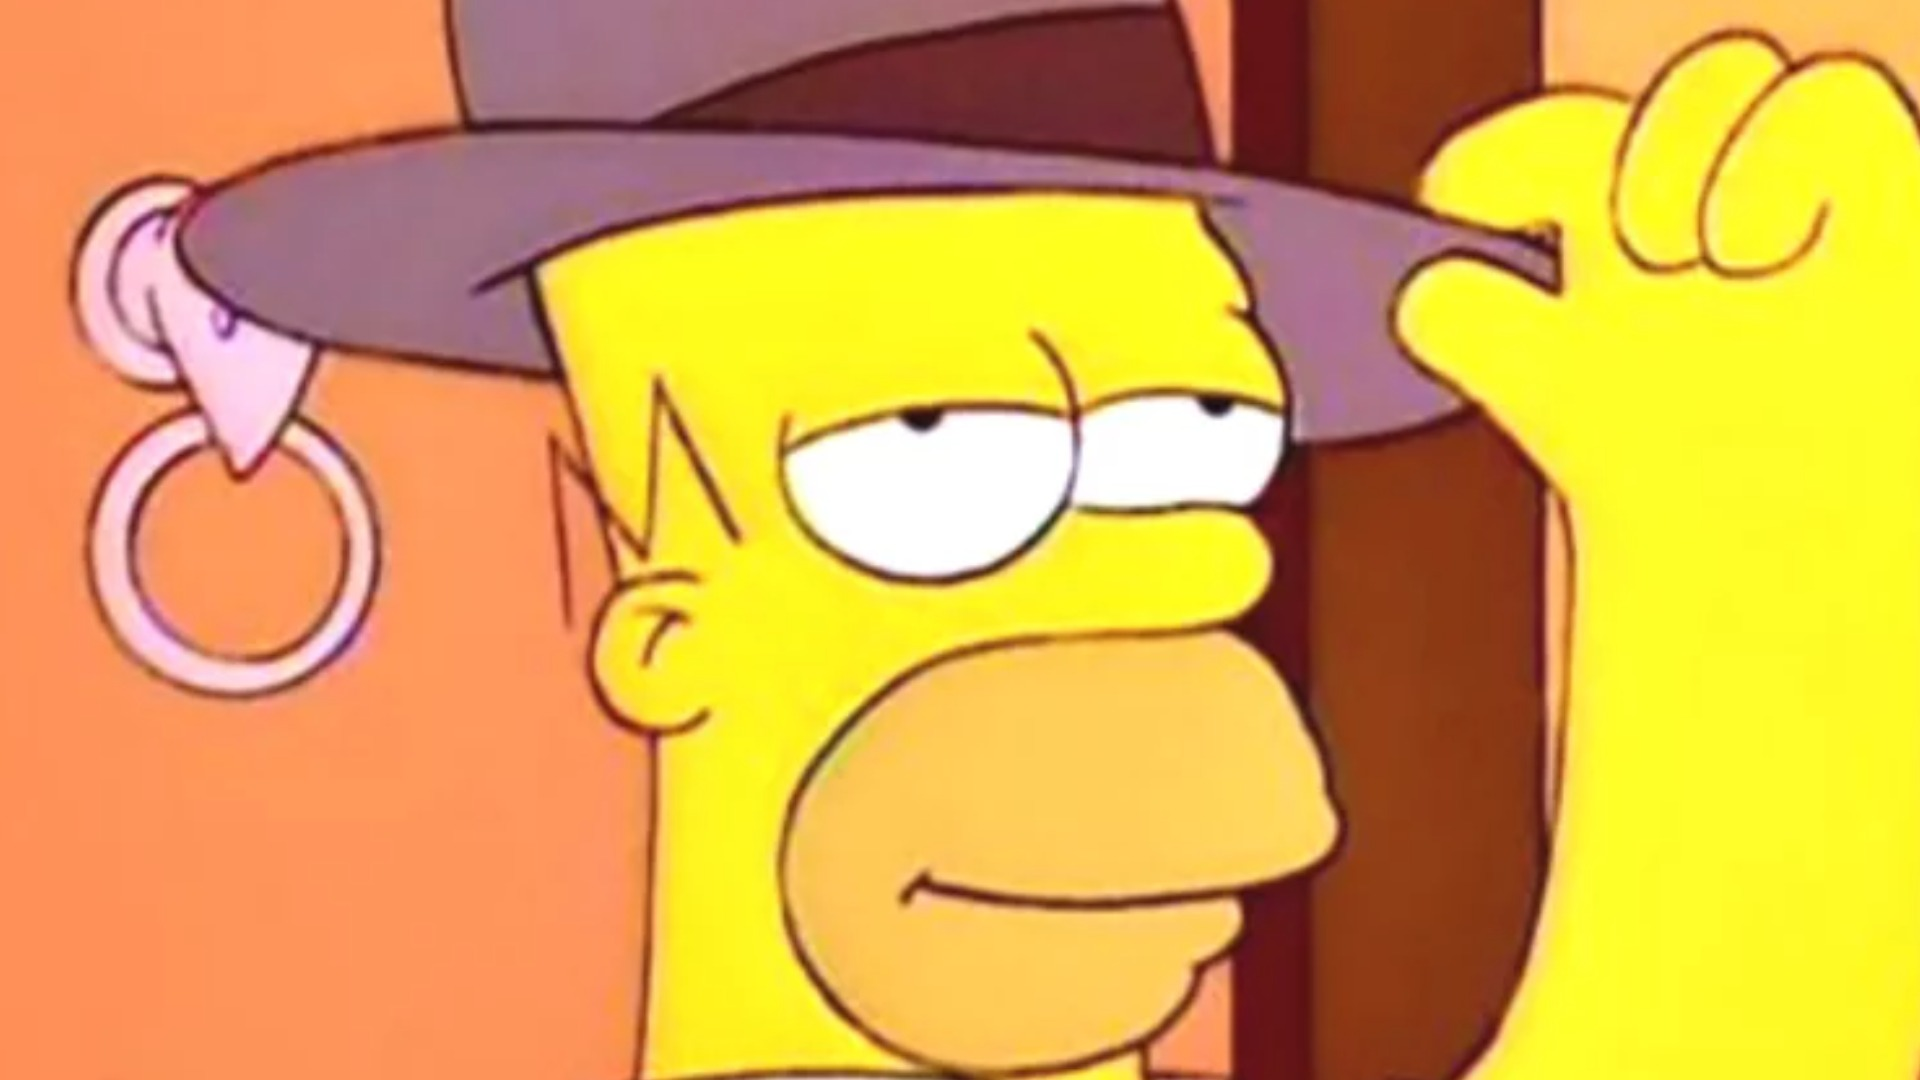 Fans Agree This Classic Simpsons Moment Took Things Too Far